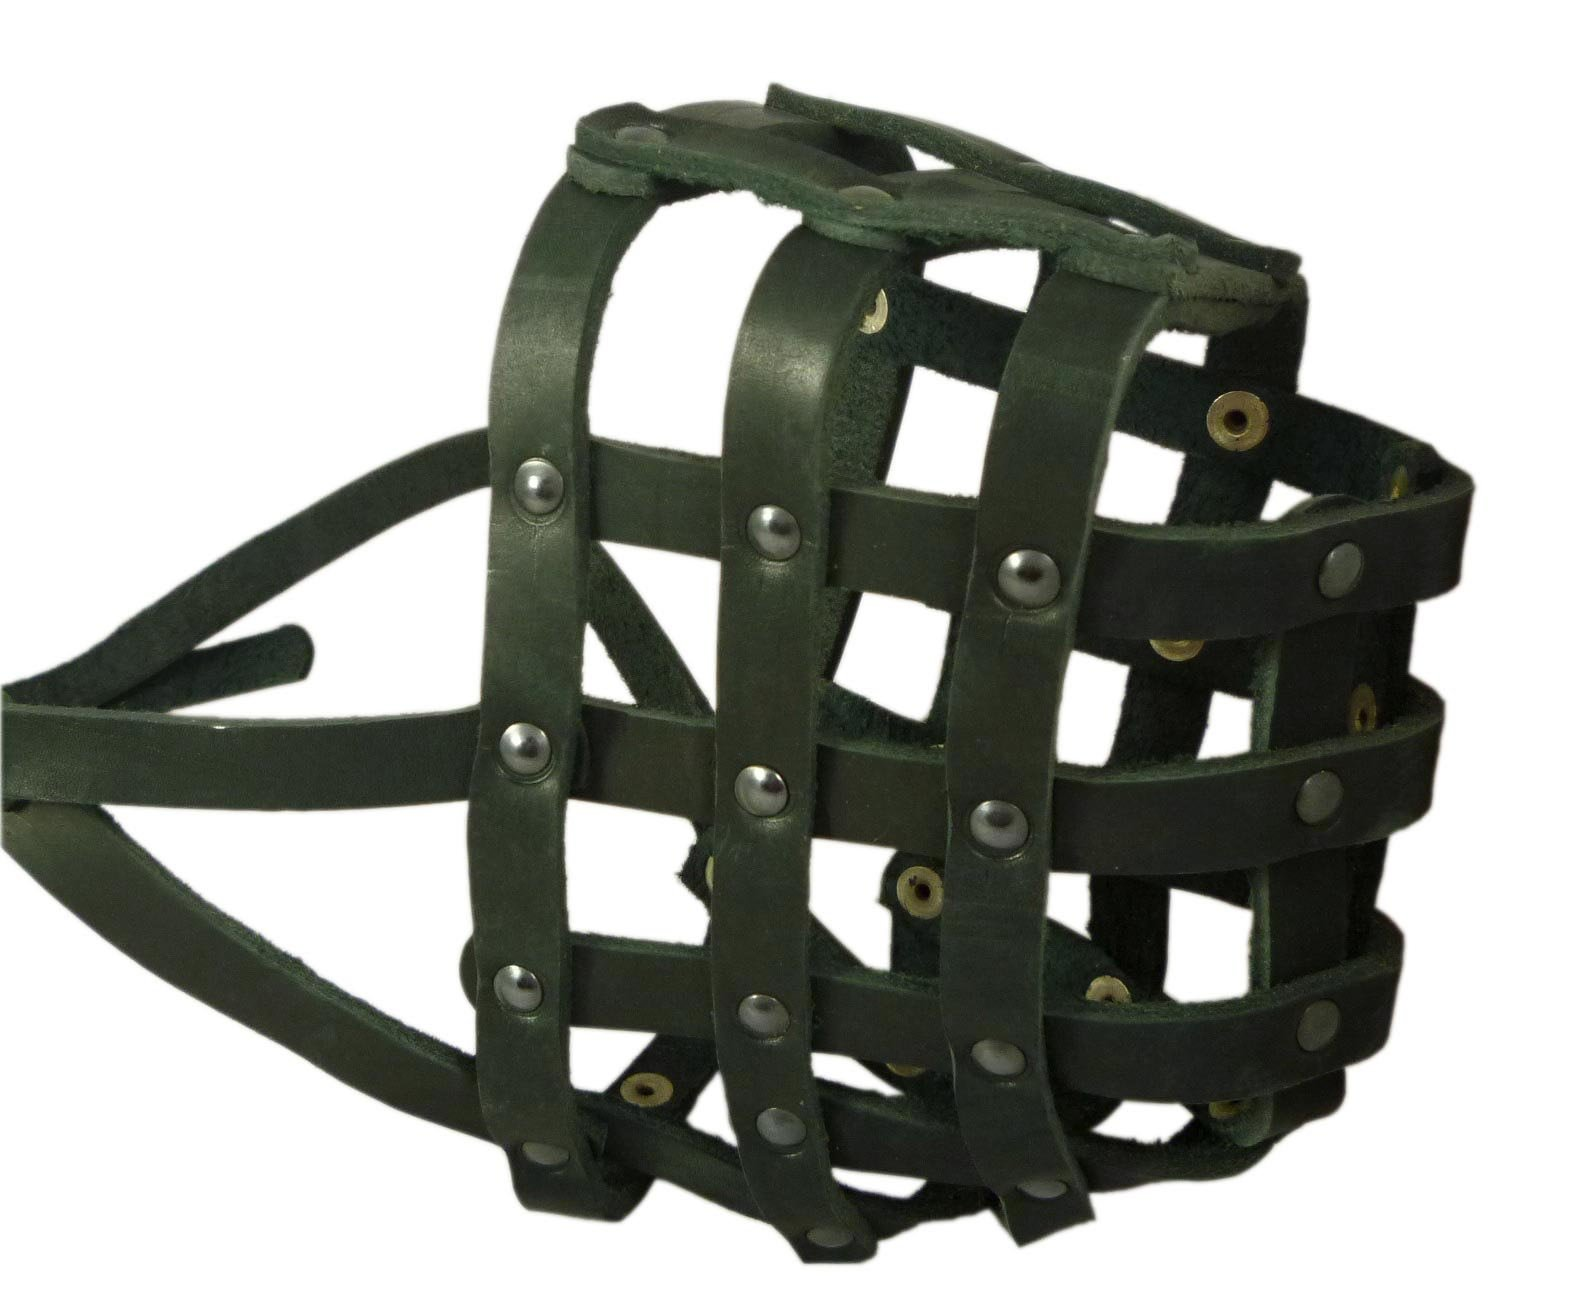 Real Leather Dog Basket Muzzle #115 Black (Circumference 18'', Snout Length 4.7'') Mastiff, Great Dane